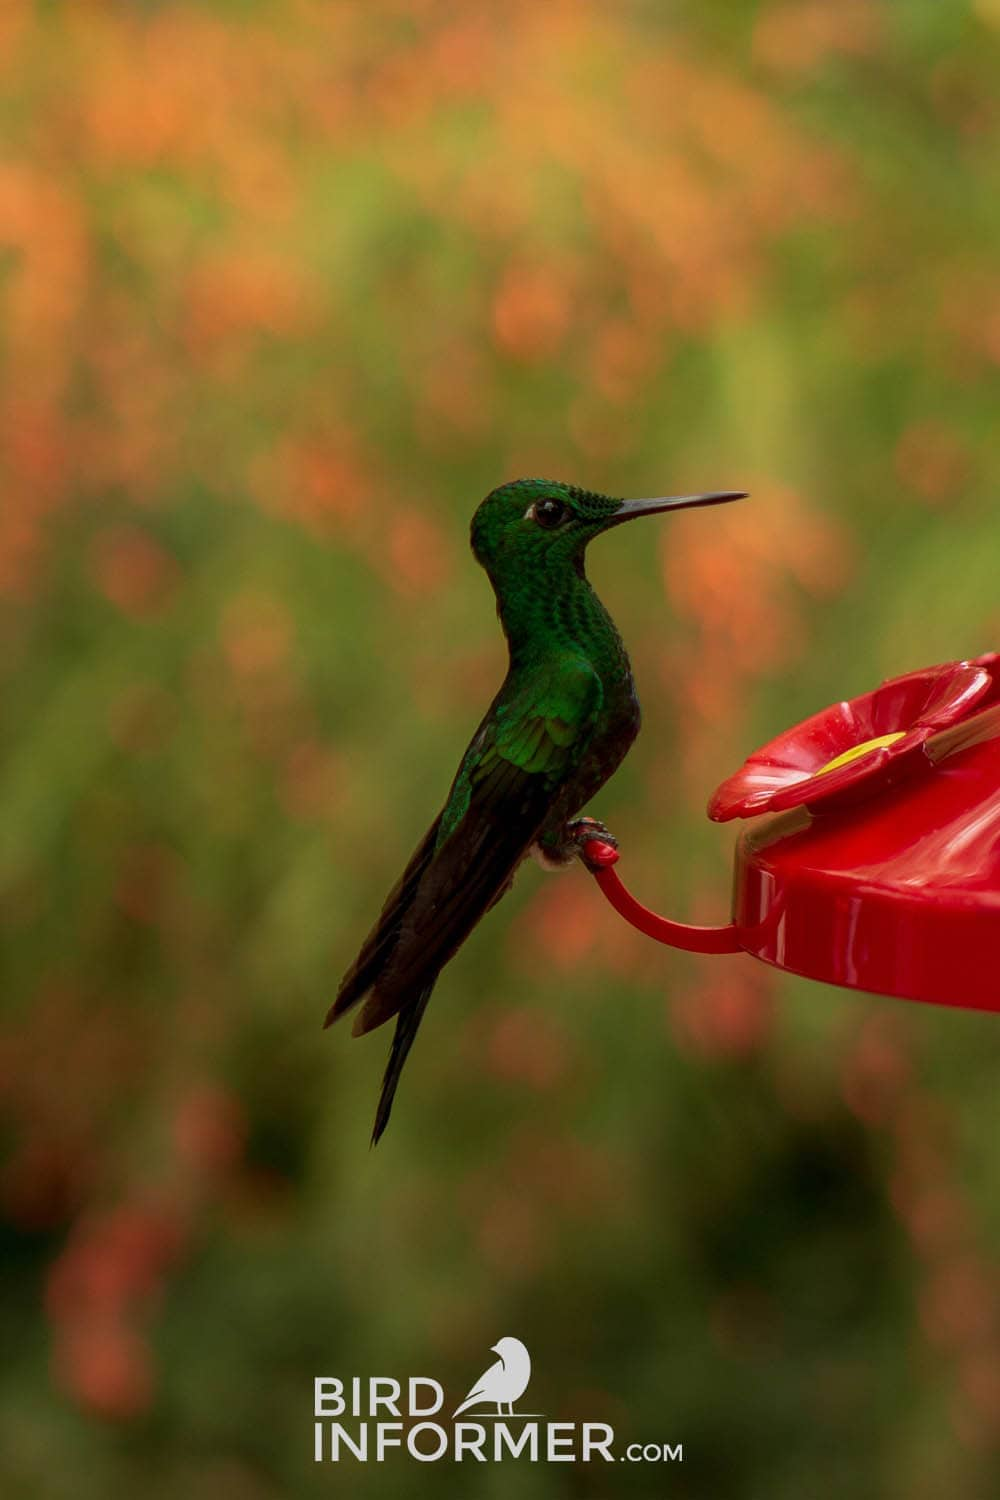 image of hummingbird eating out of nectar birdfeeder